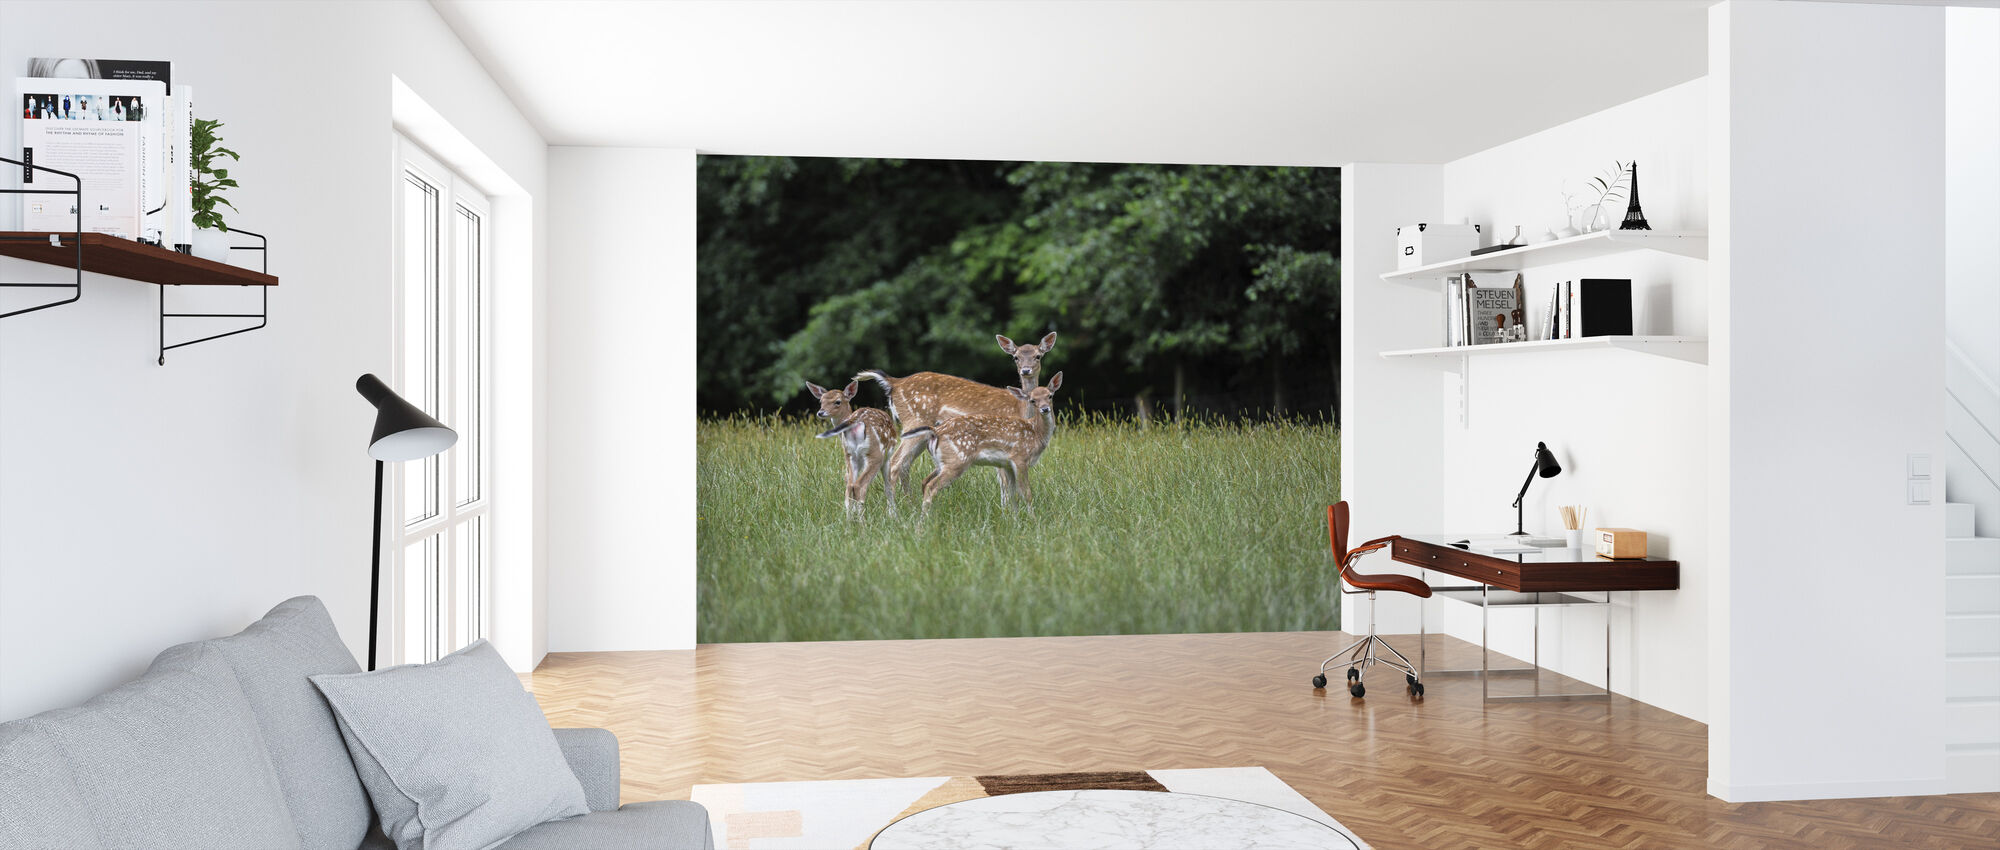 White Tailed Deer - Wallpaper - Office